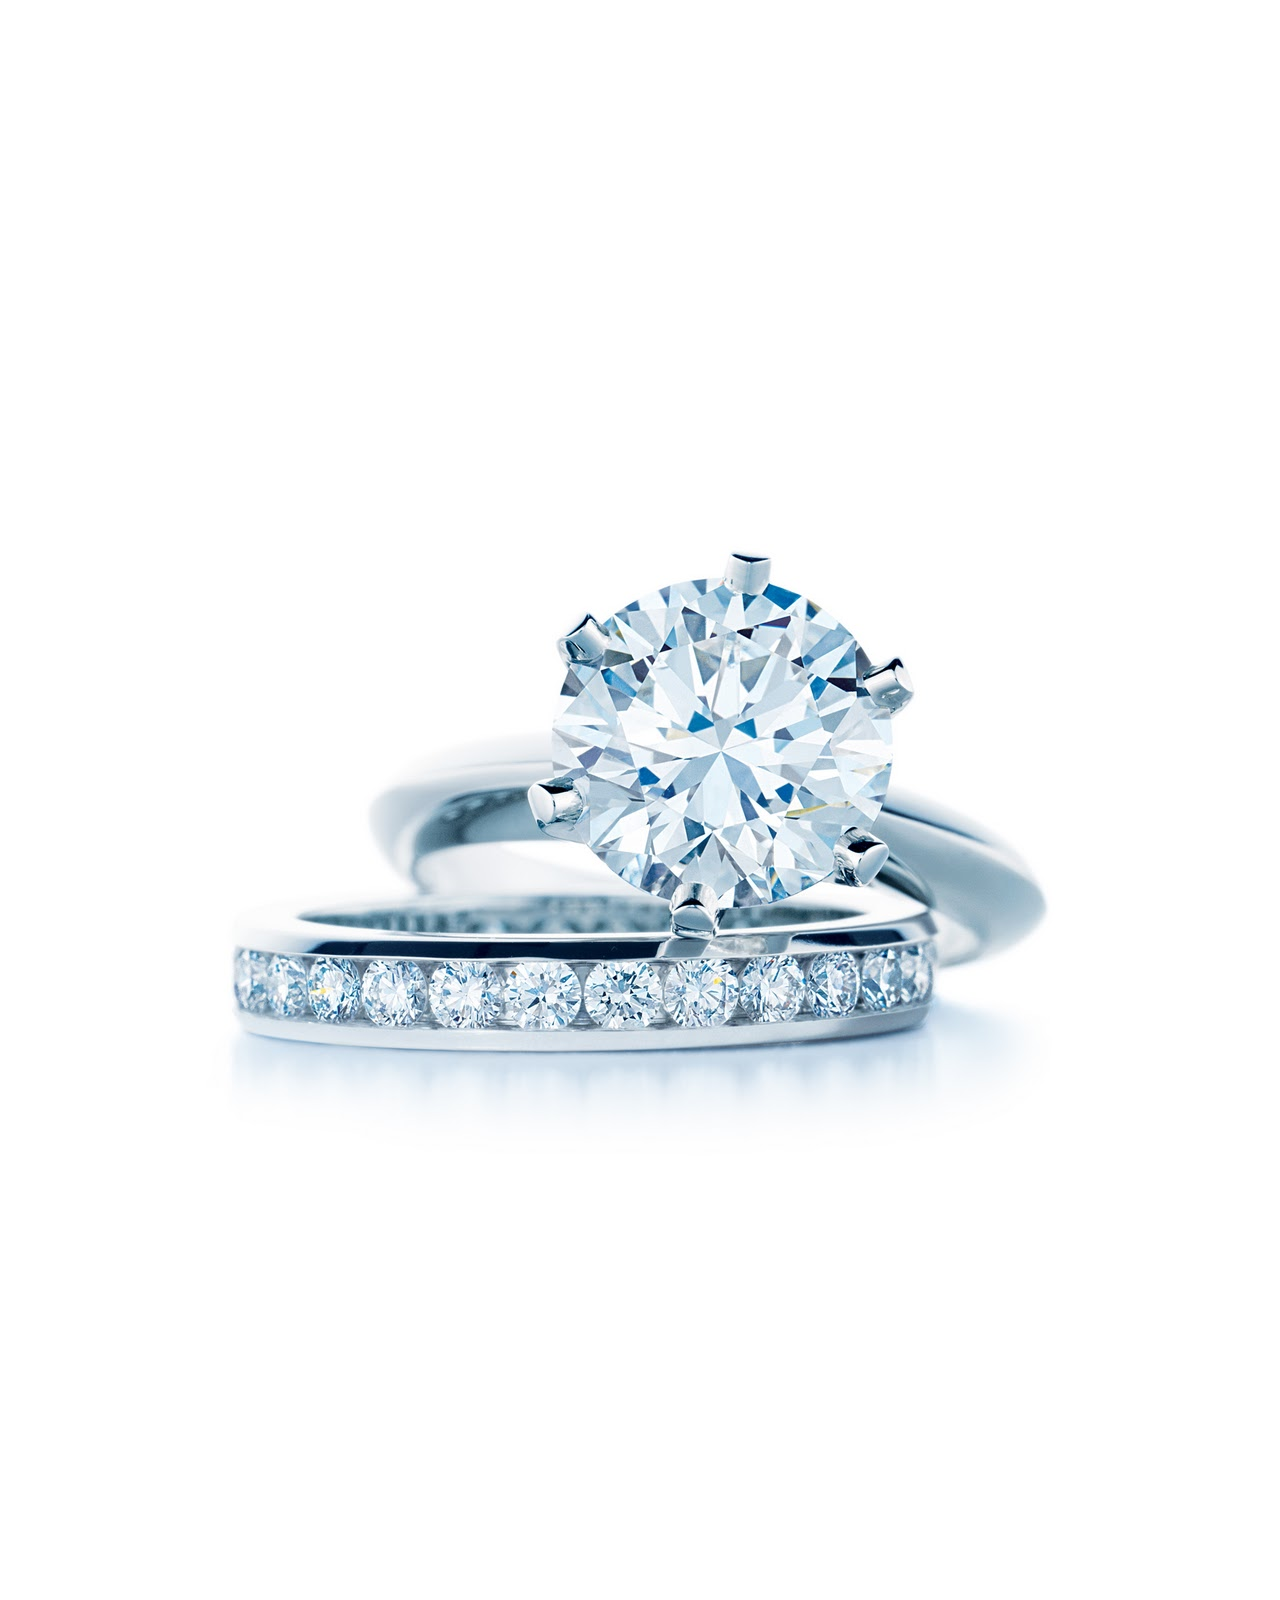 http://4.bp.blogspot.com/-RFJ9_RLB180/TqNoMj3e82I/AAAAAAAAAVM/KxYGEzPs8gA/s1600/TIFFANY%25C2%25AE+SETTING+ENGAGEMENT+RING+AND+BAND.jpg